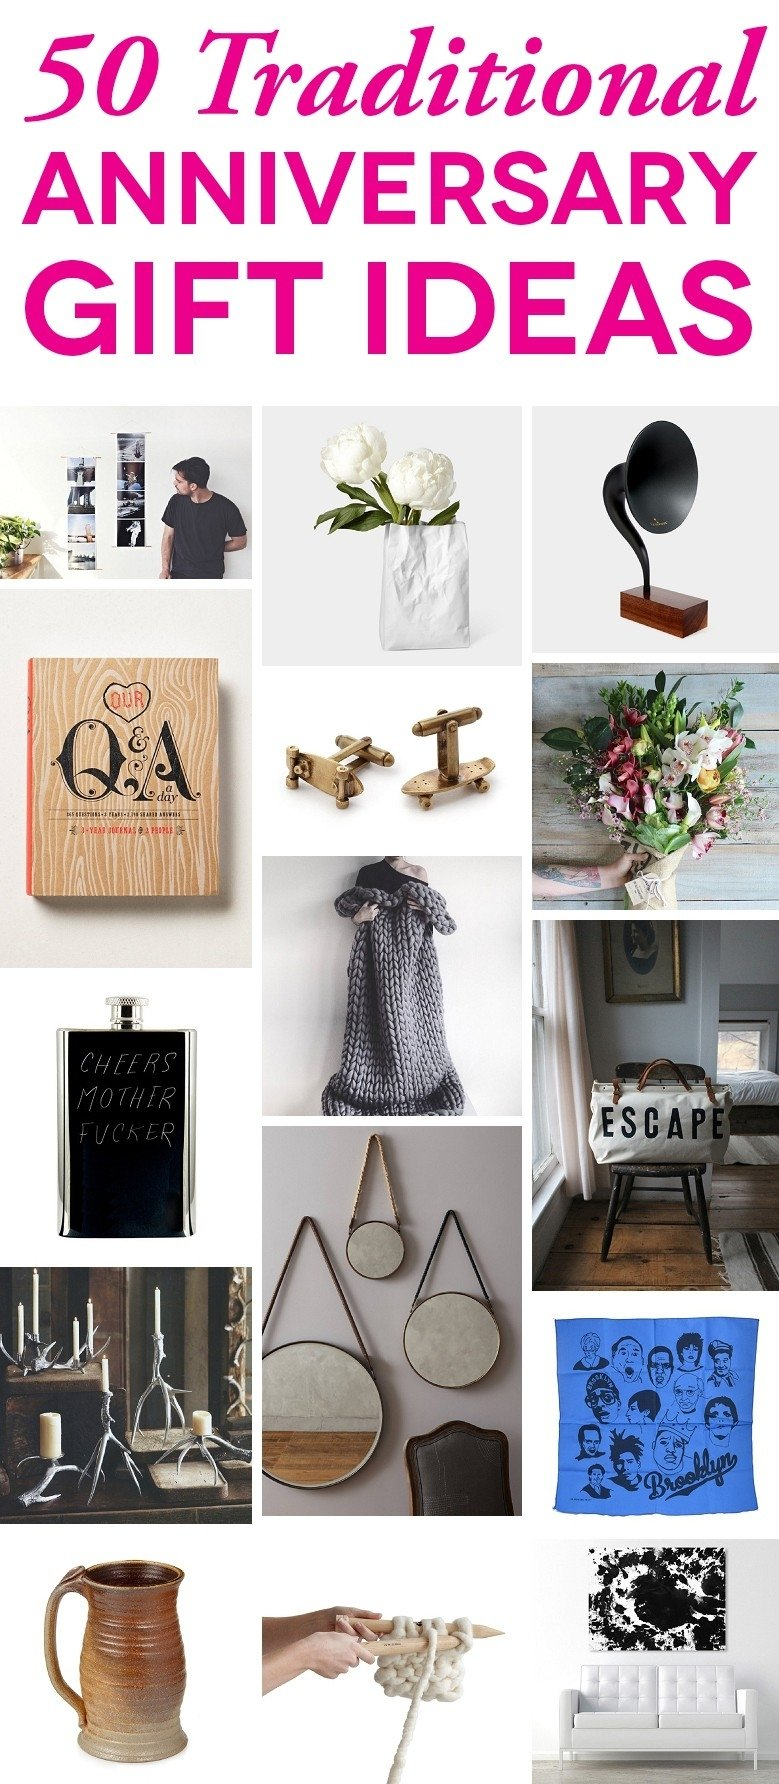 10 Great Gift Ideas For Husband Anniversary 1st wedding anniversary gift ideas for husband unique traditional 2020